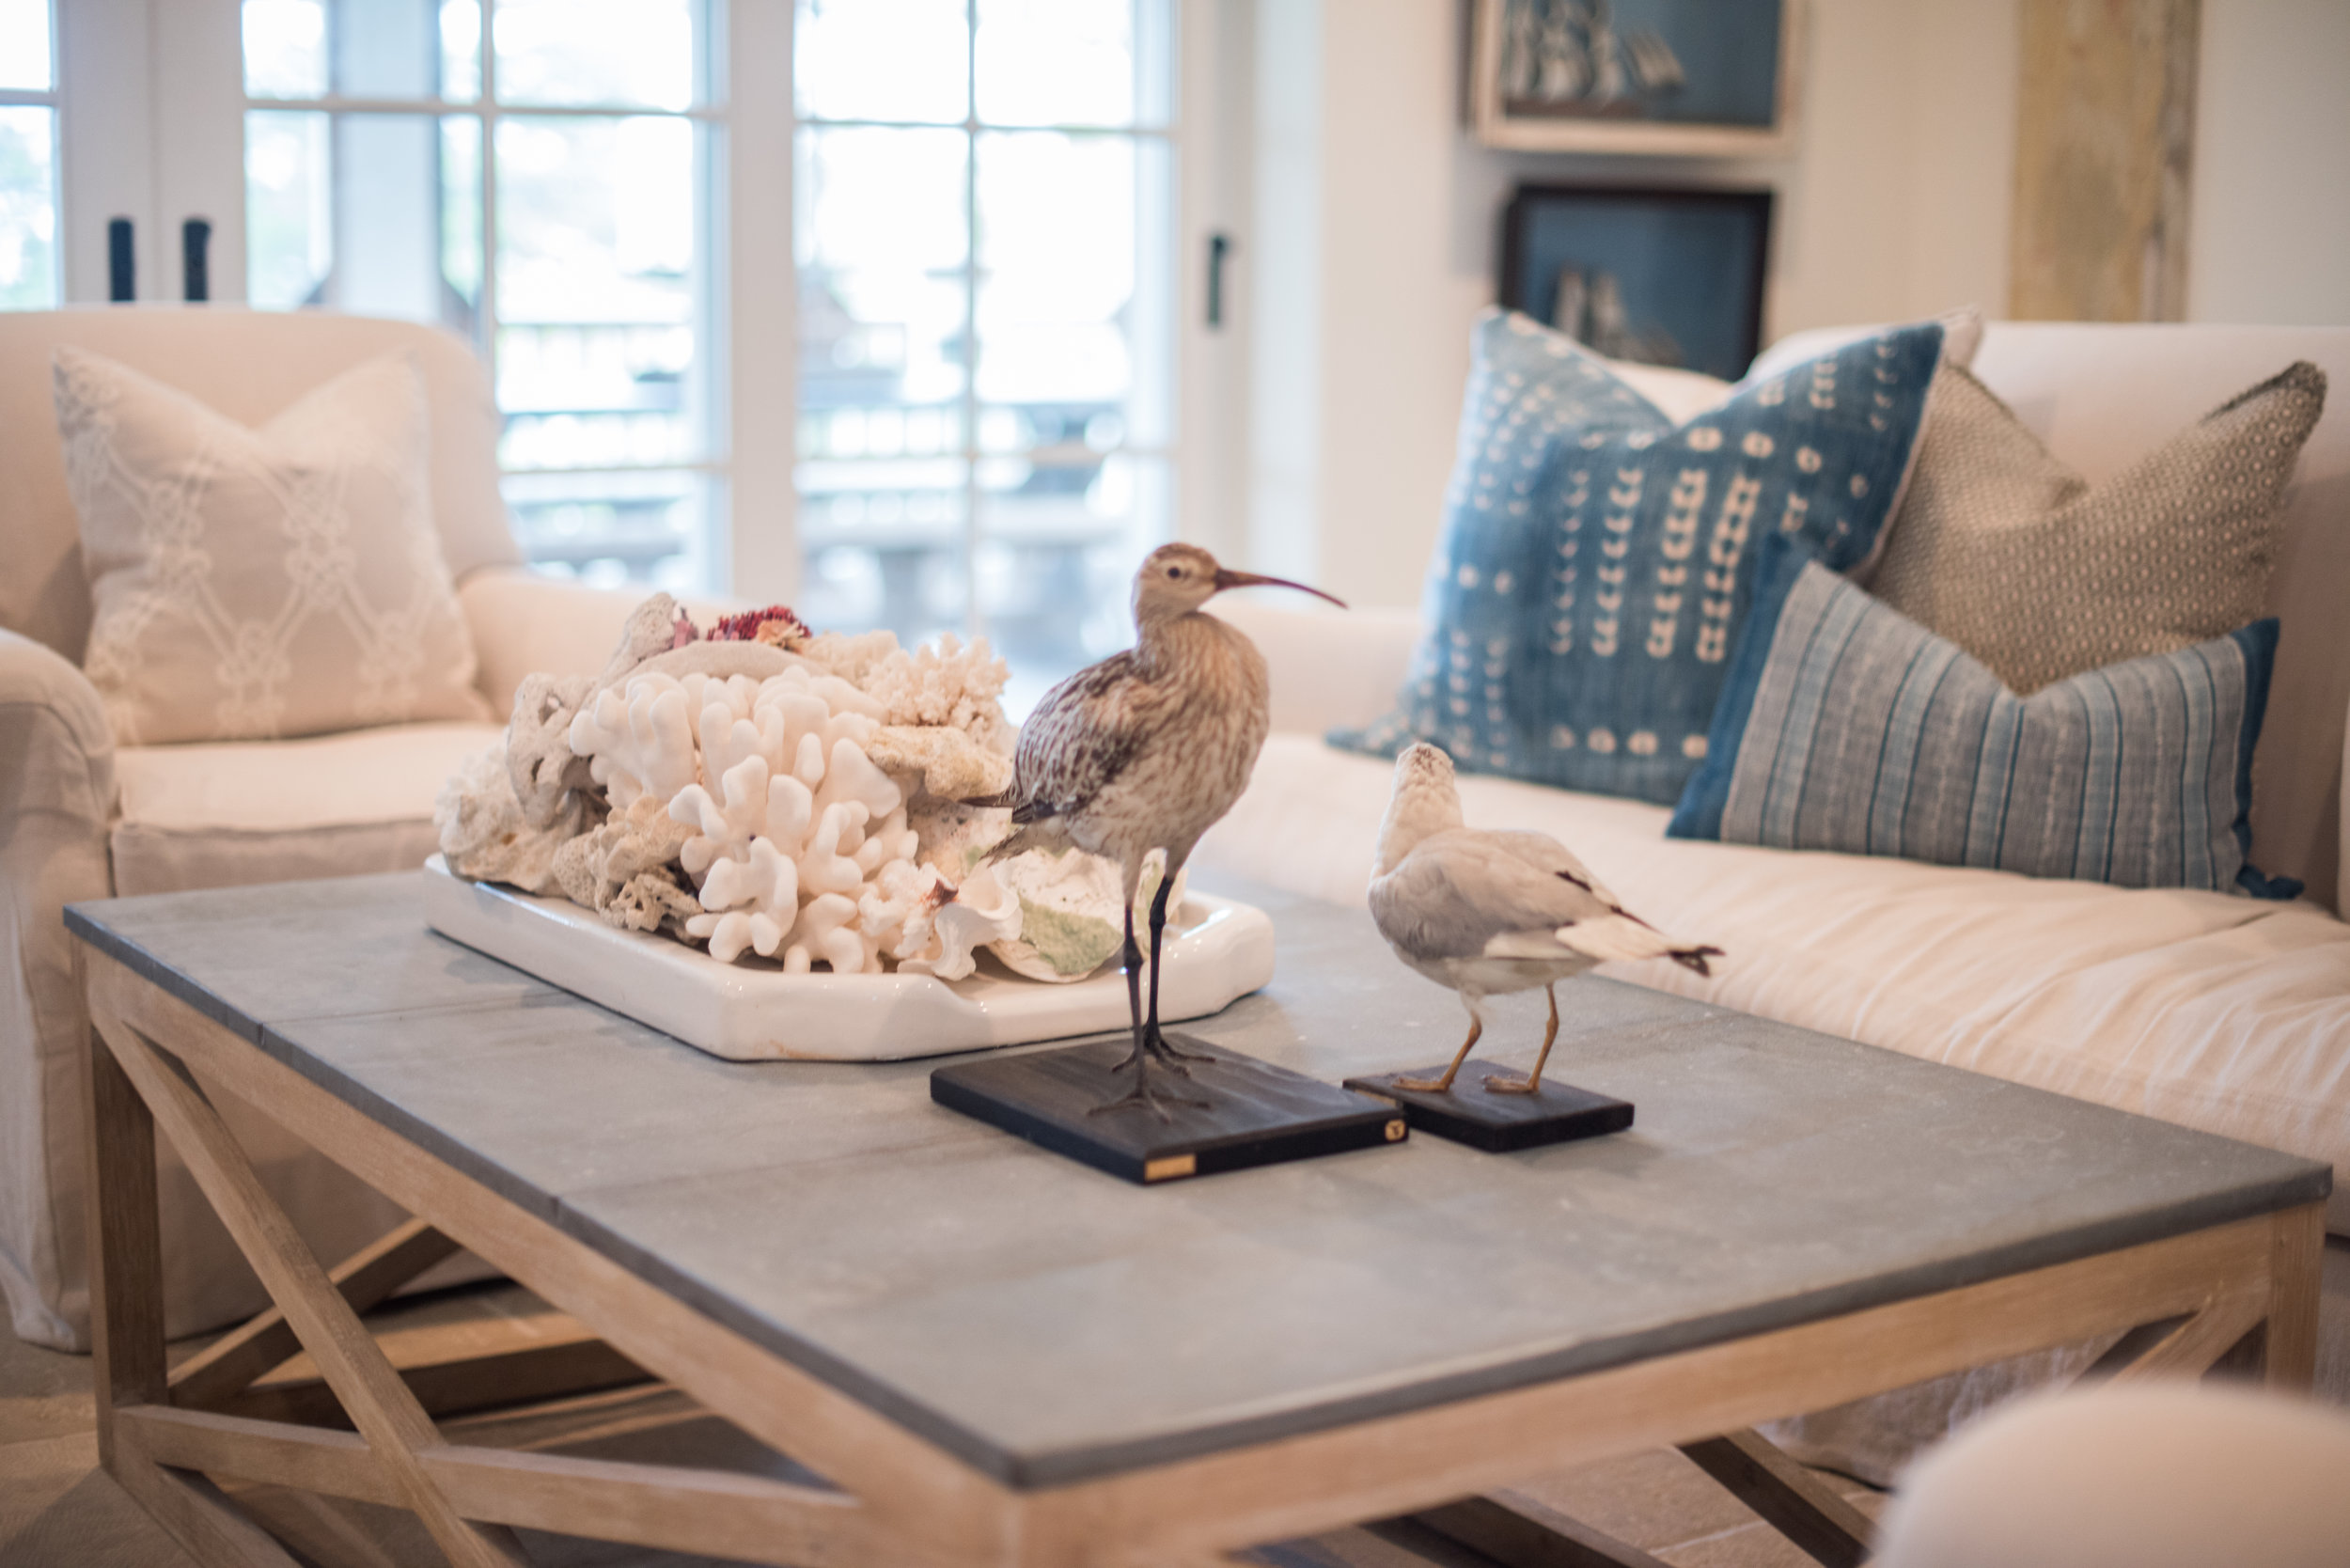 Private Residence | Fenwick Island, Delaware - +View Project